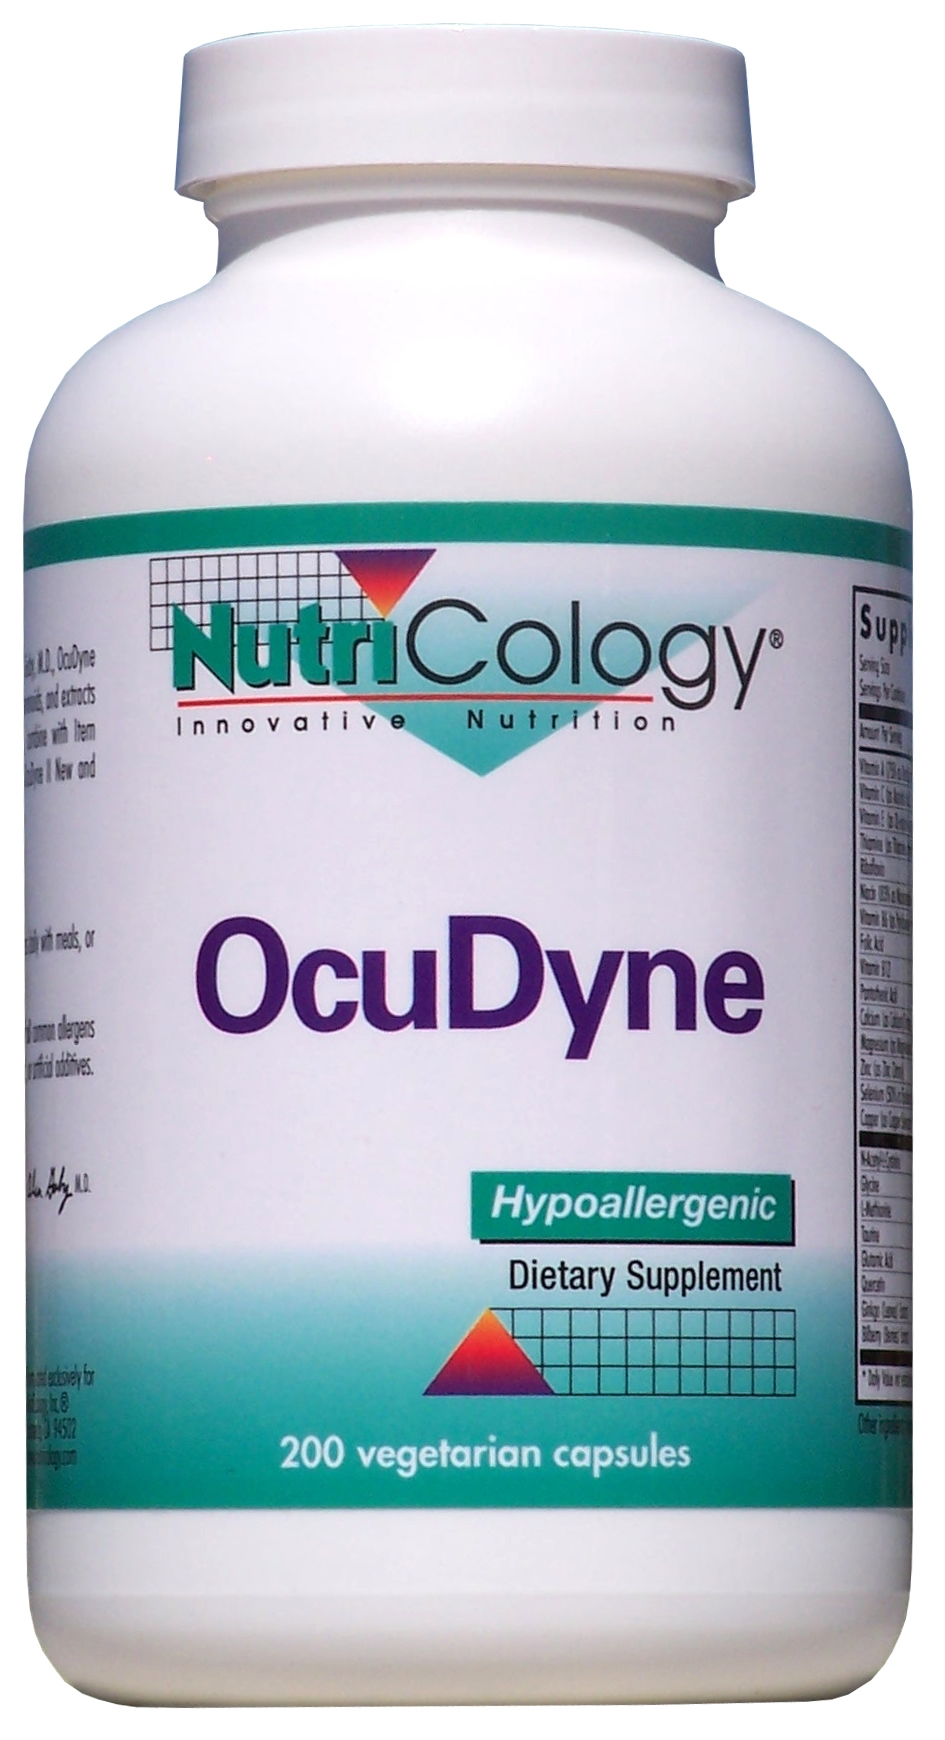 OcuDyne 200 Vegetarian Caps by Nutricology